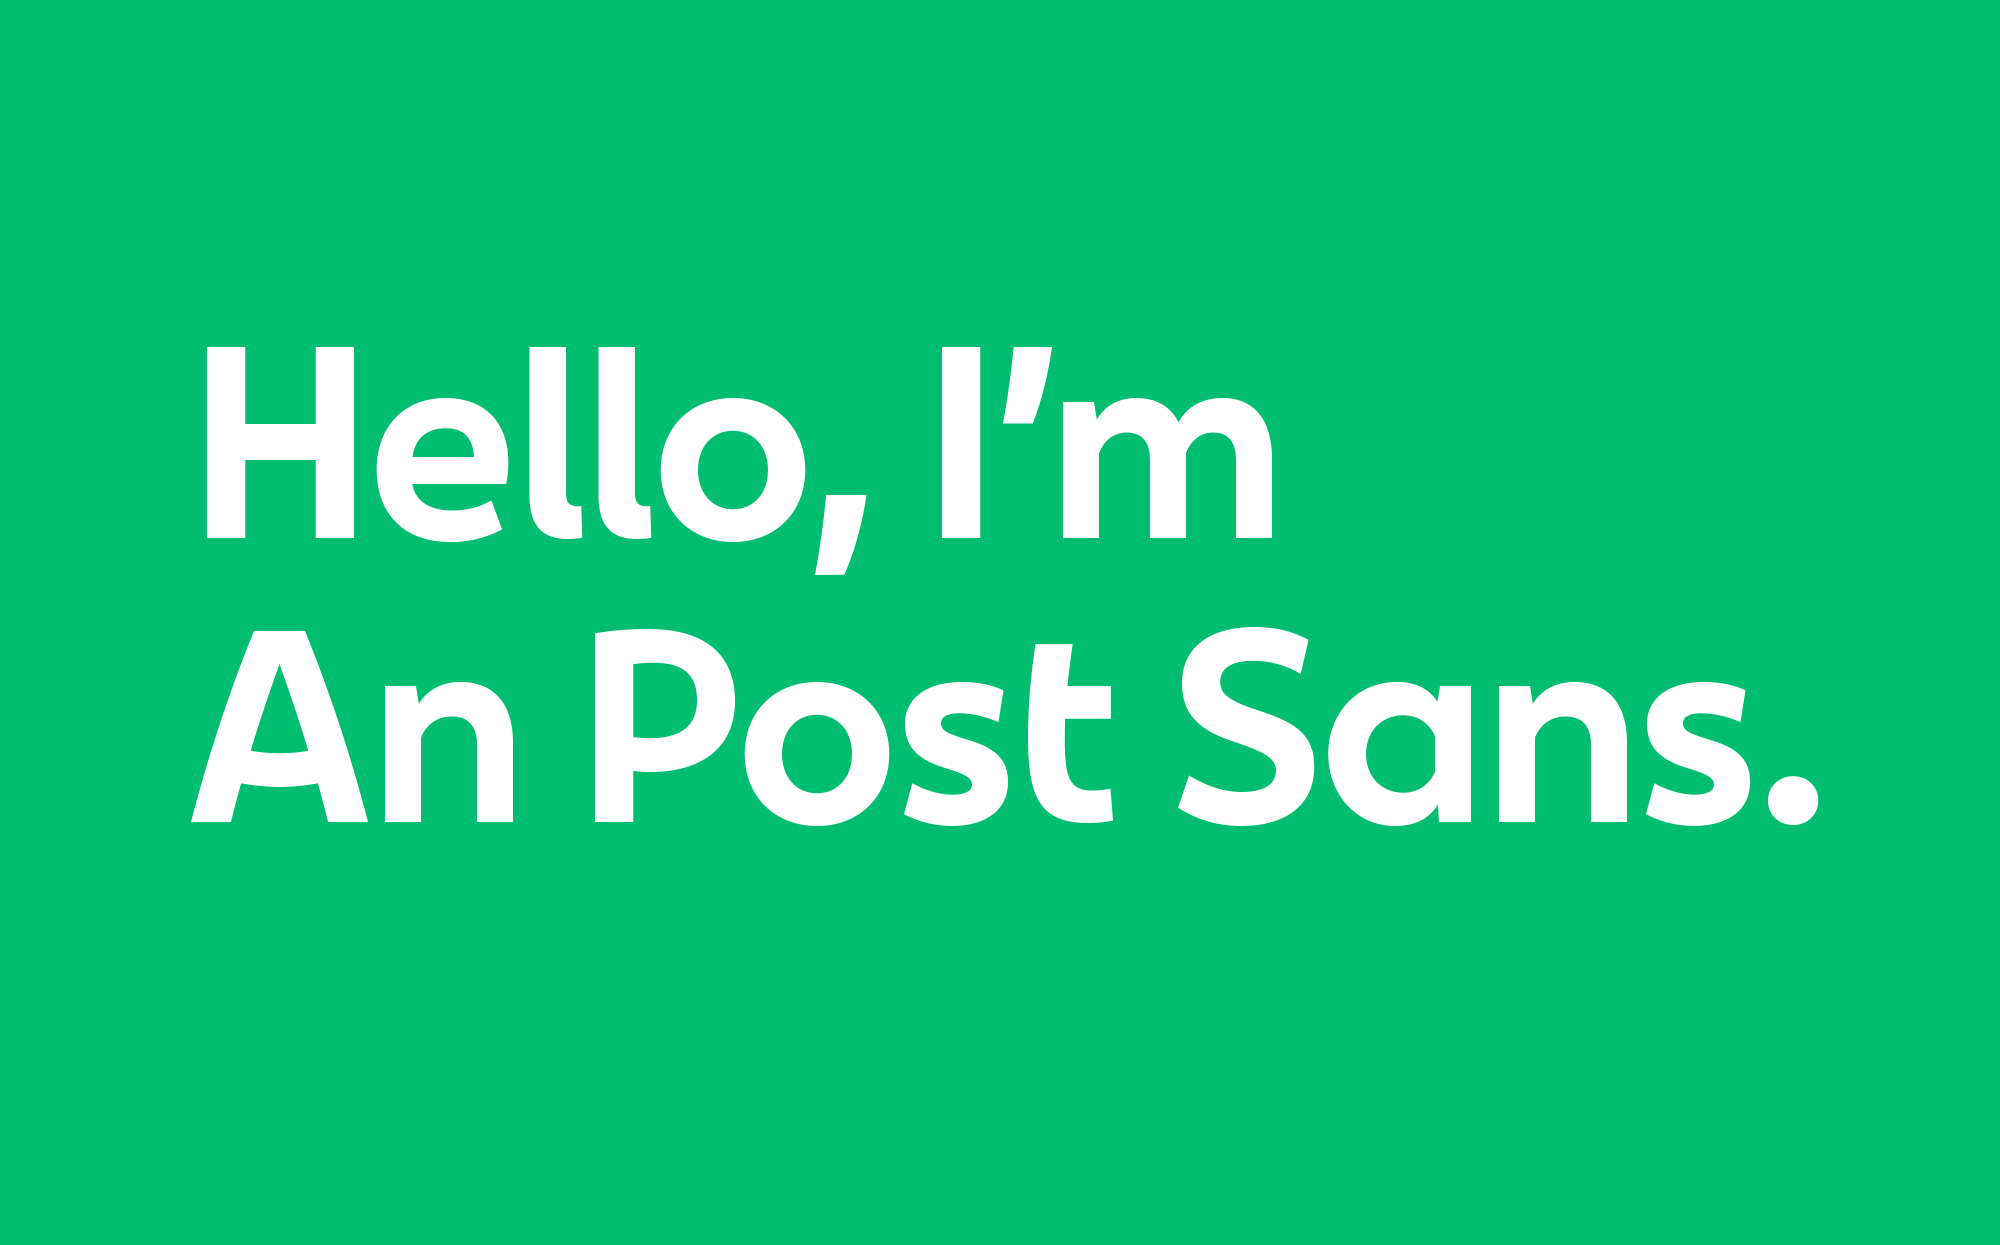 Cover image: An Post Sans